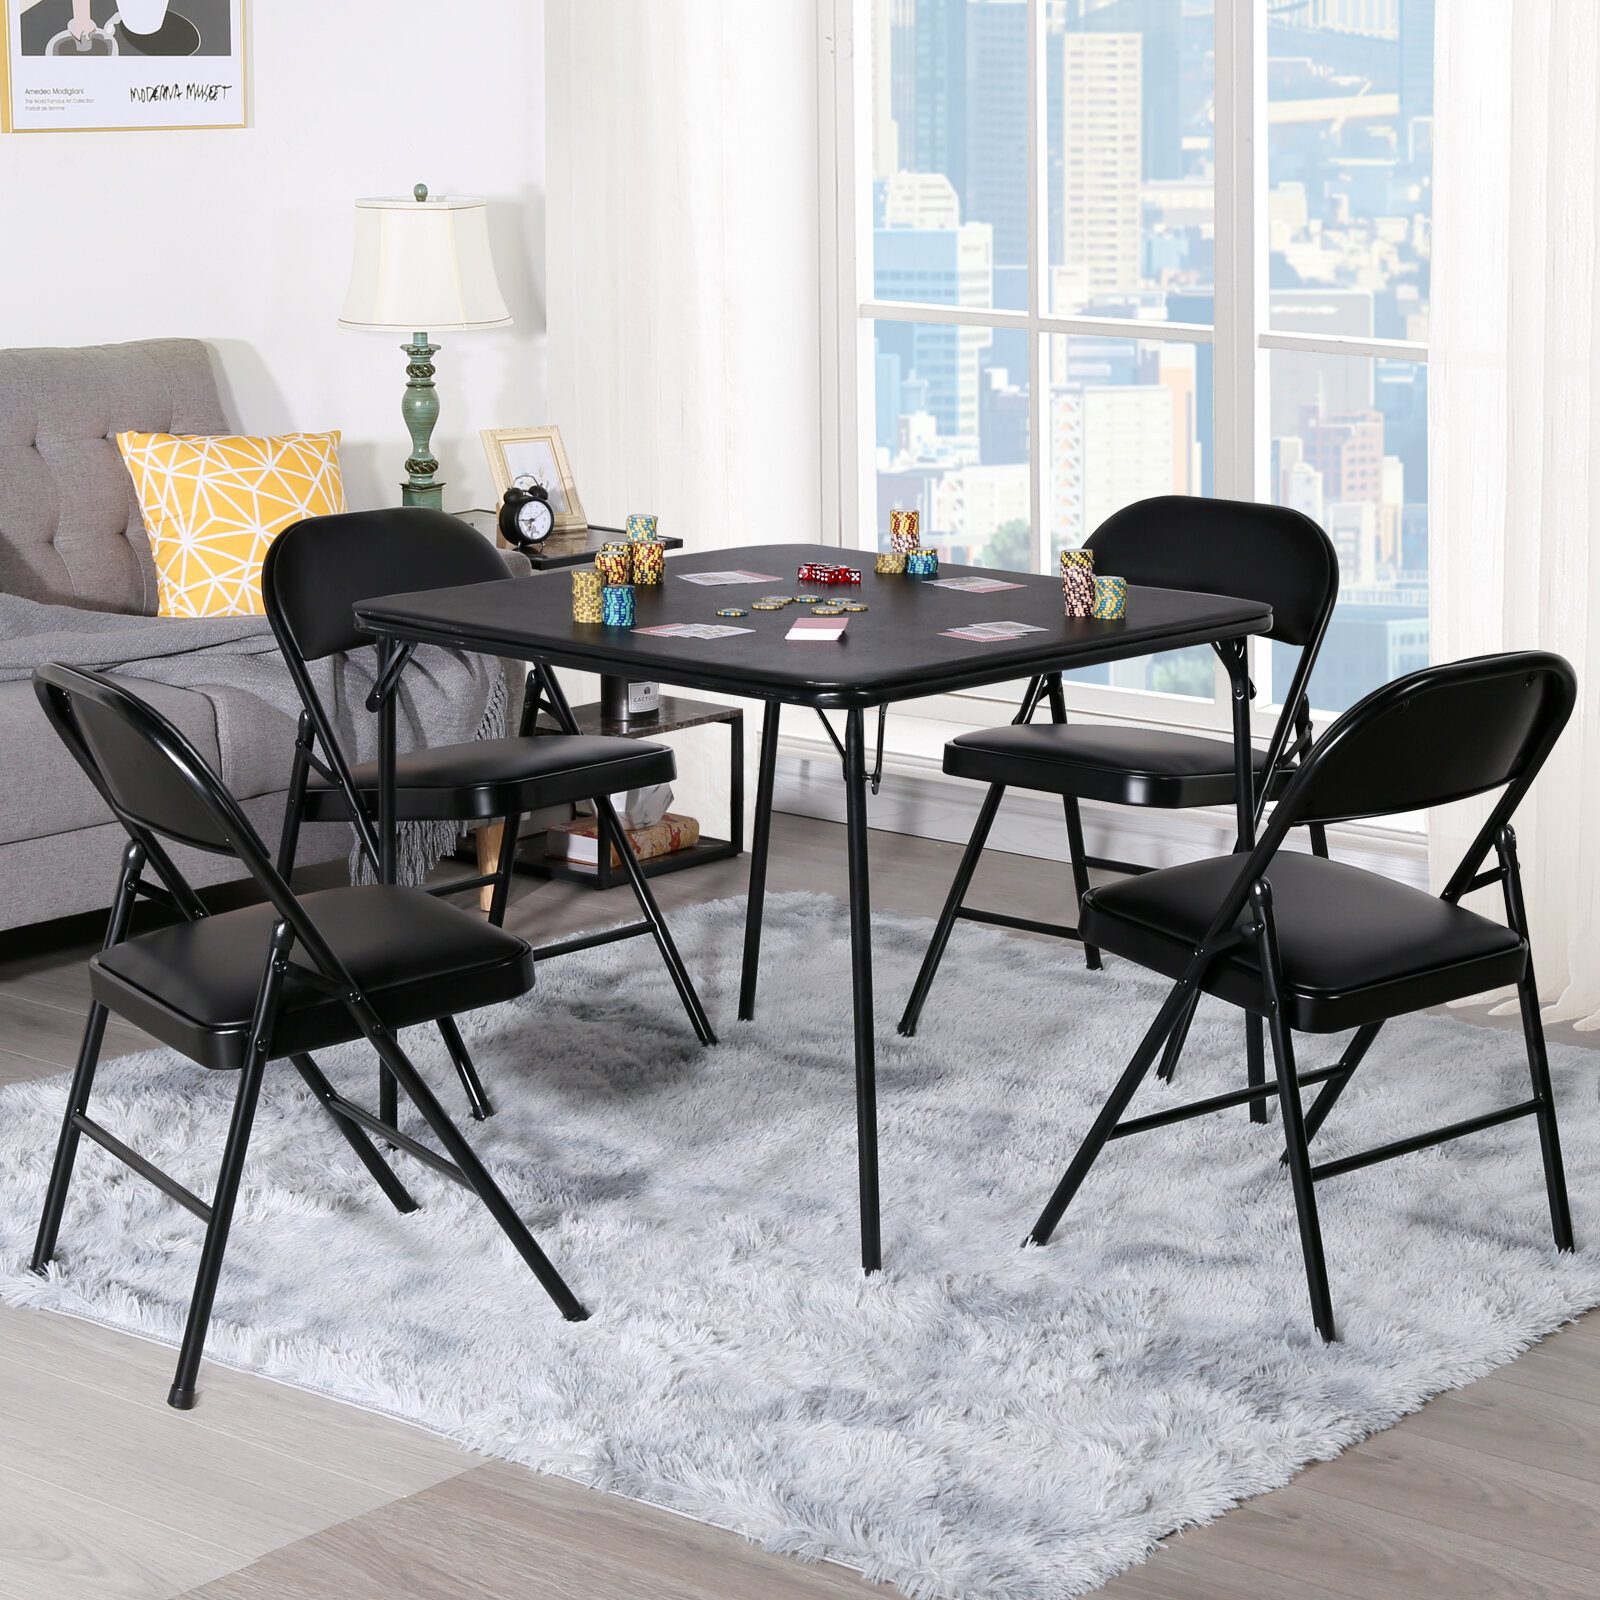 "Vecelo 33.8"" 4 - Player Card Table with Chairs 